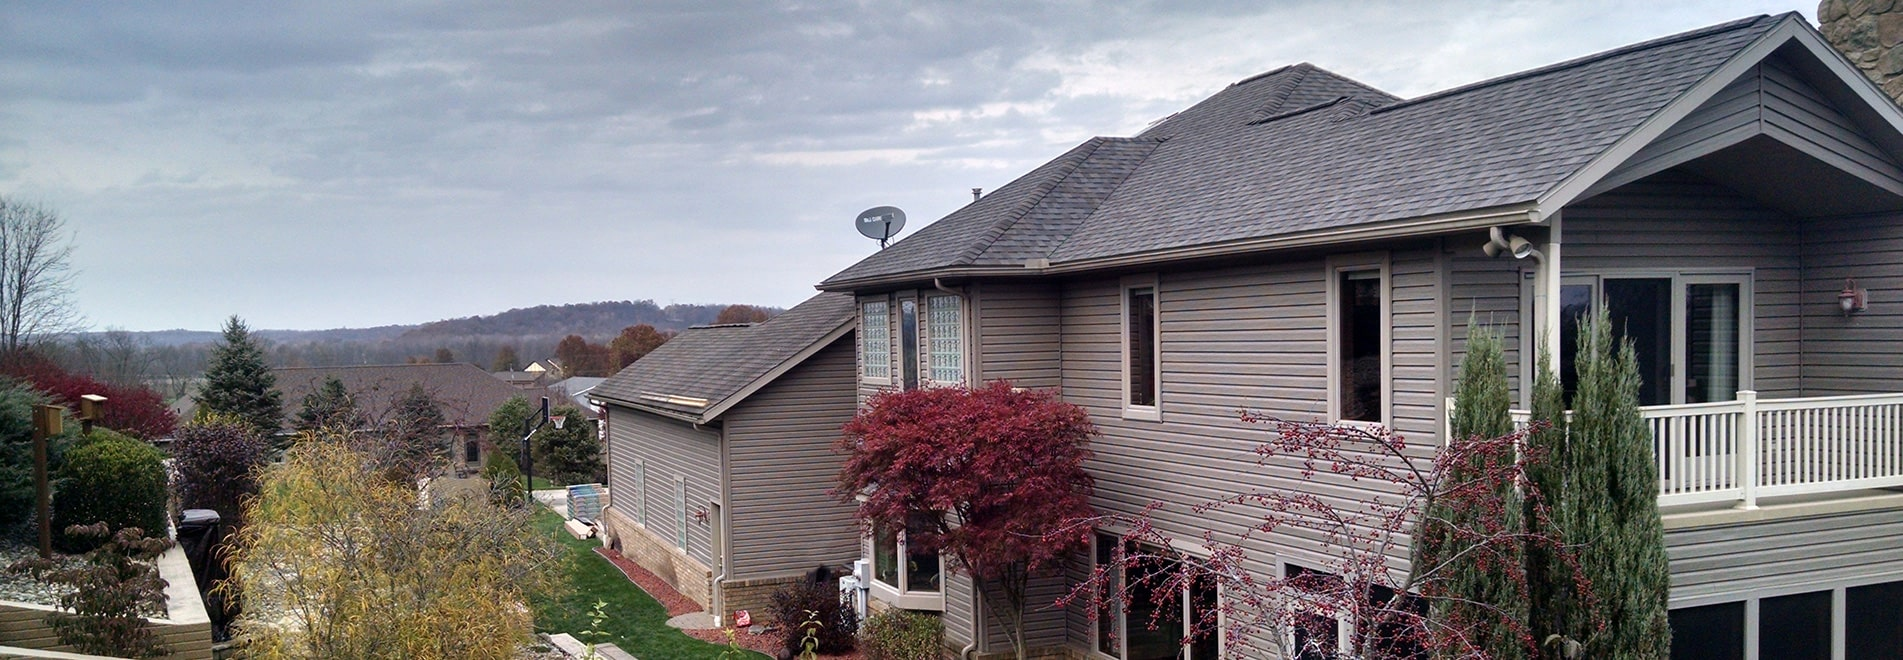 Miller S Roofing Roof Repair And Replacement In Baltic Ohio